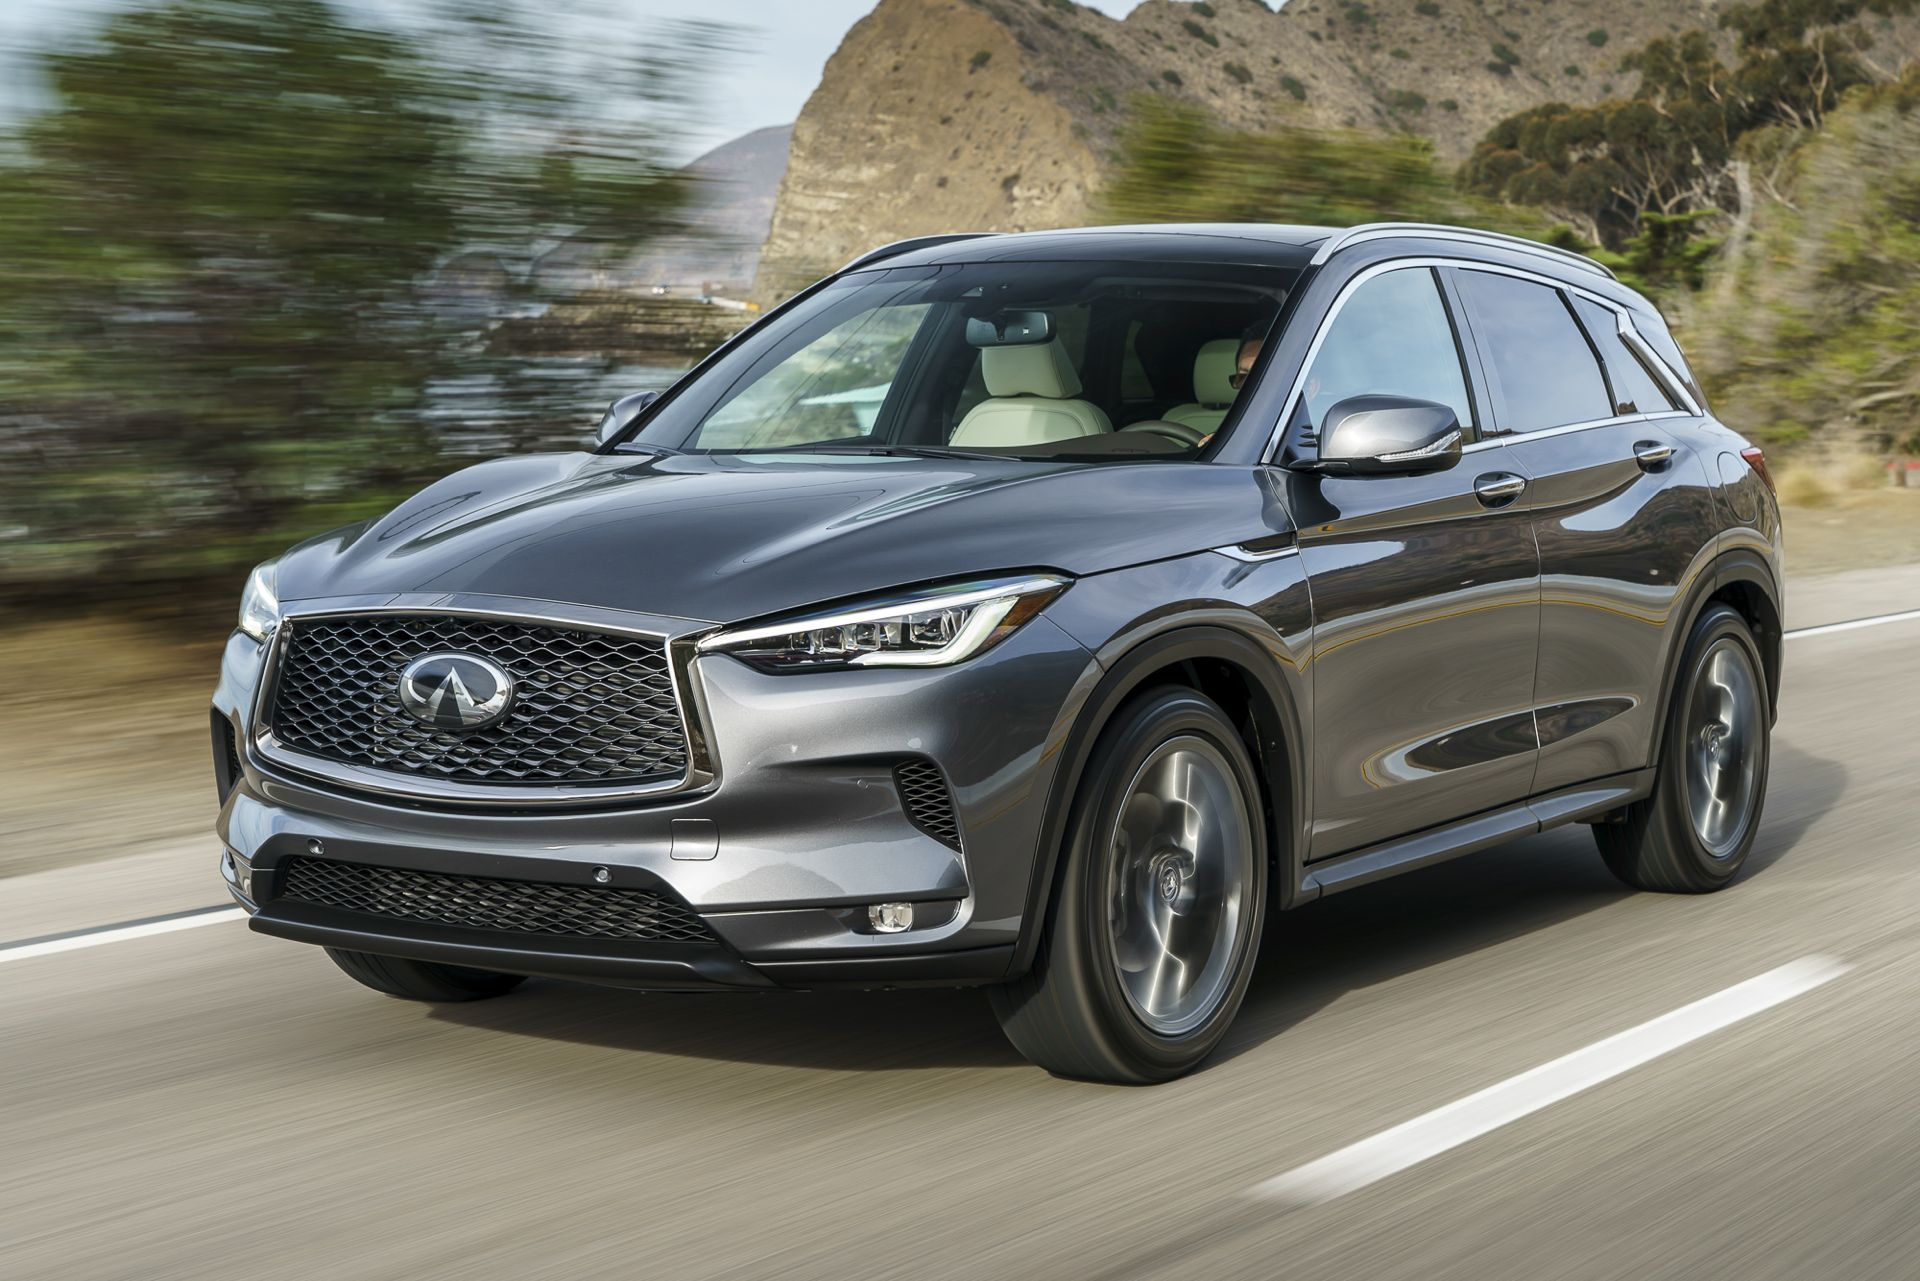 2018 infiniti qx50 first drive hope for a game changer gtspirit. Black Bedroom Furniture Sets. Home Design Ideas